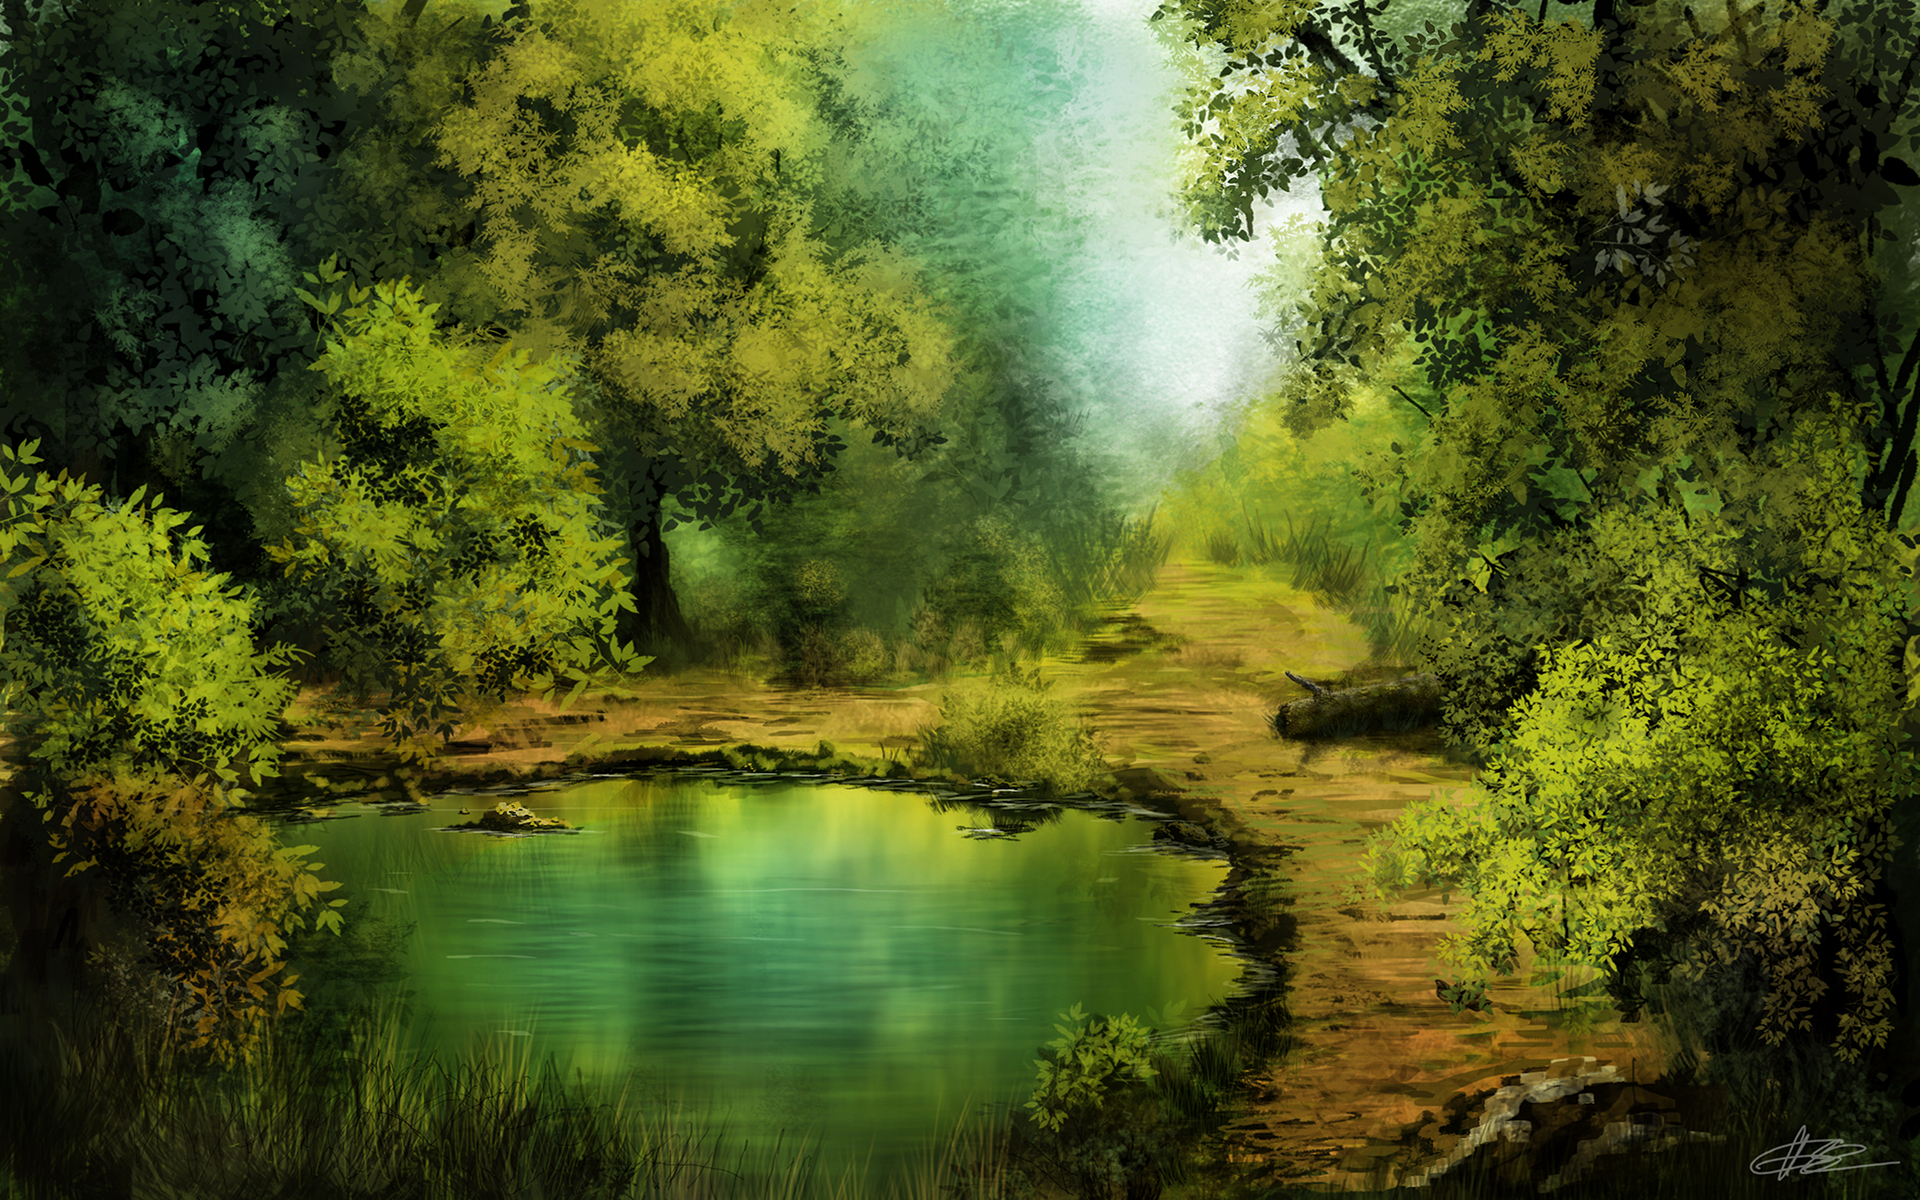 Forest Lake by odisz on DeviantArt